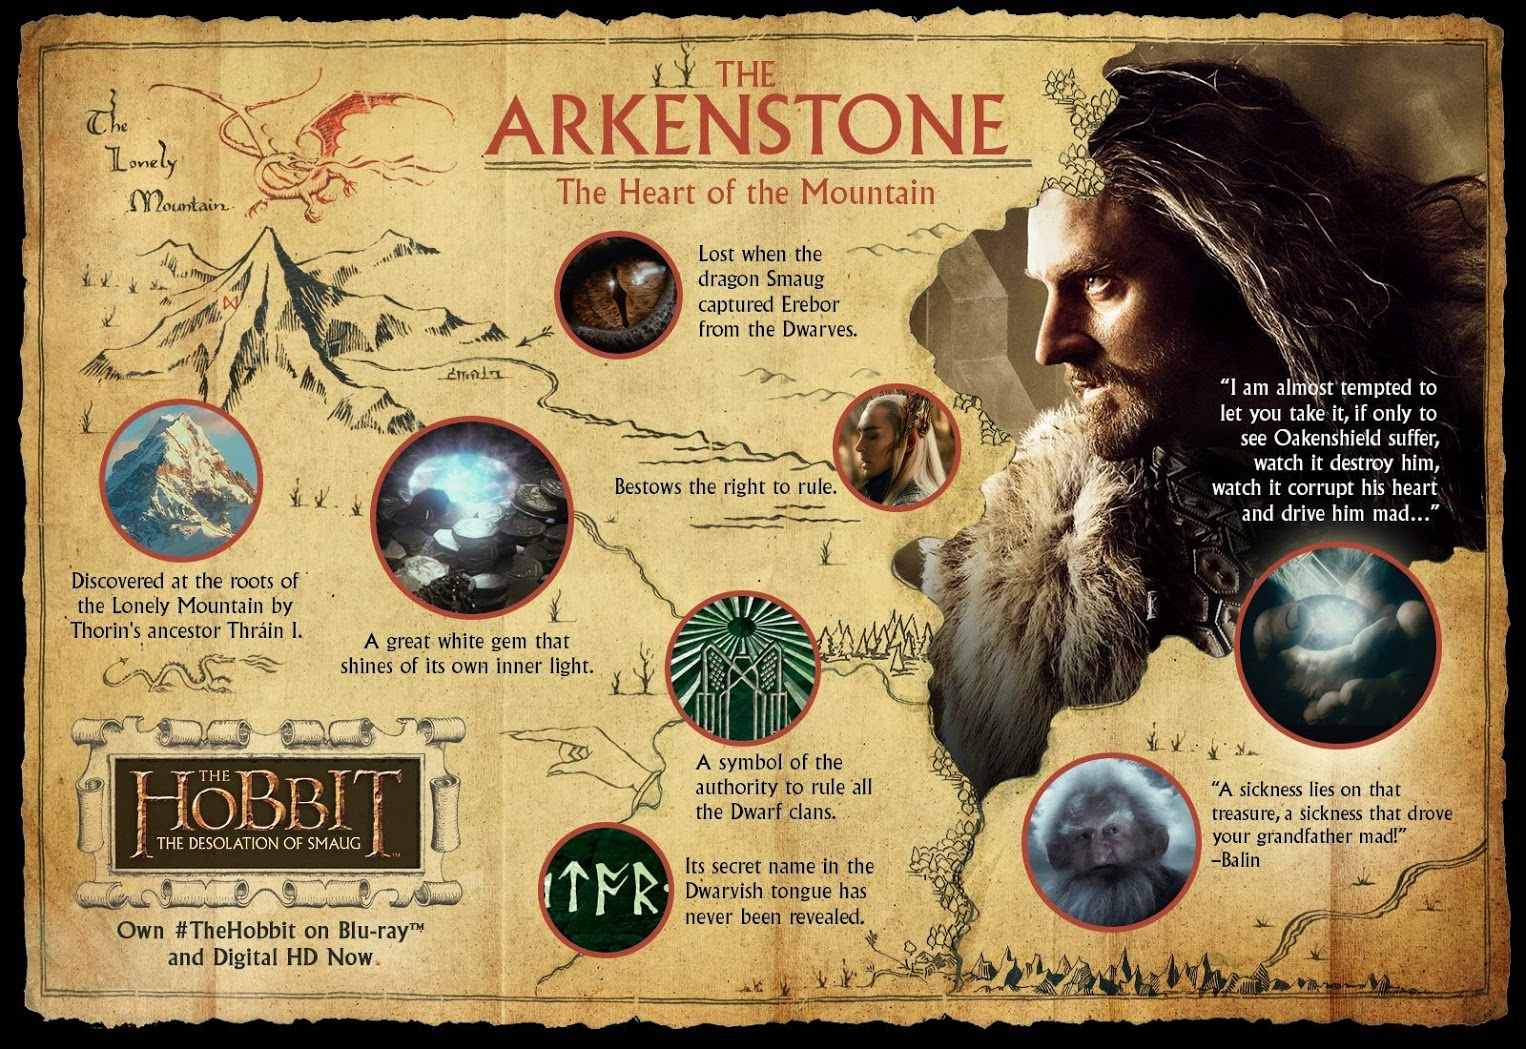 check out this very cool poster about the arkenstone